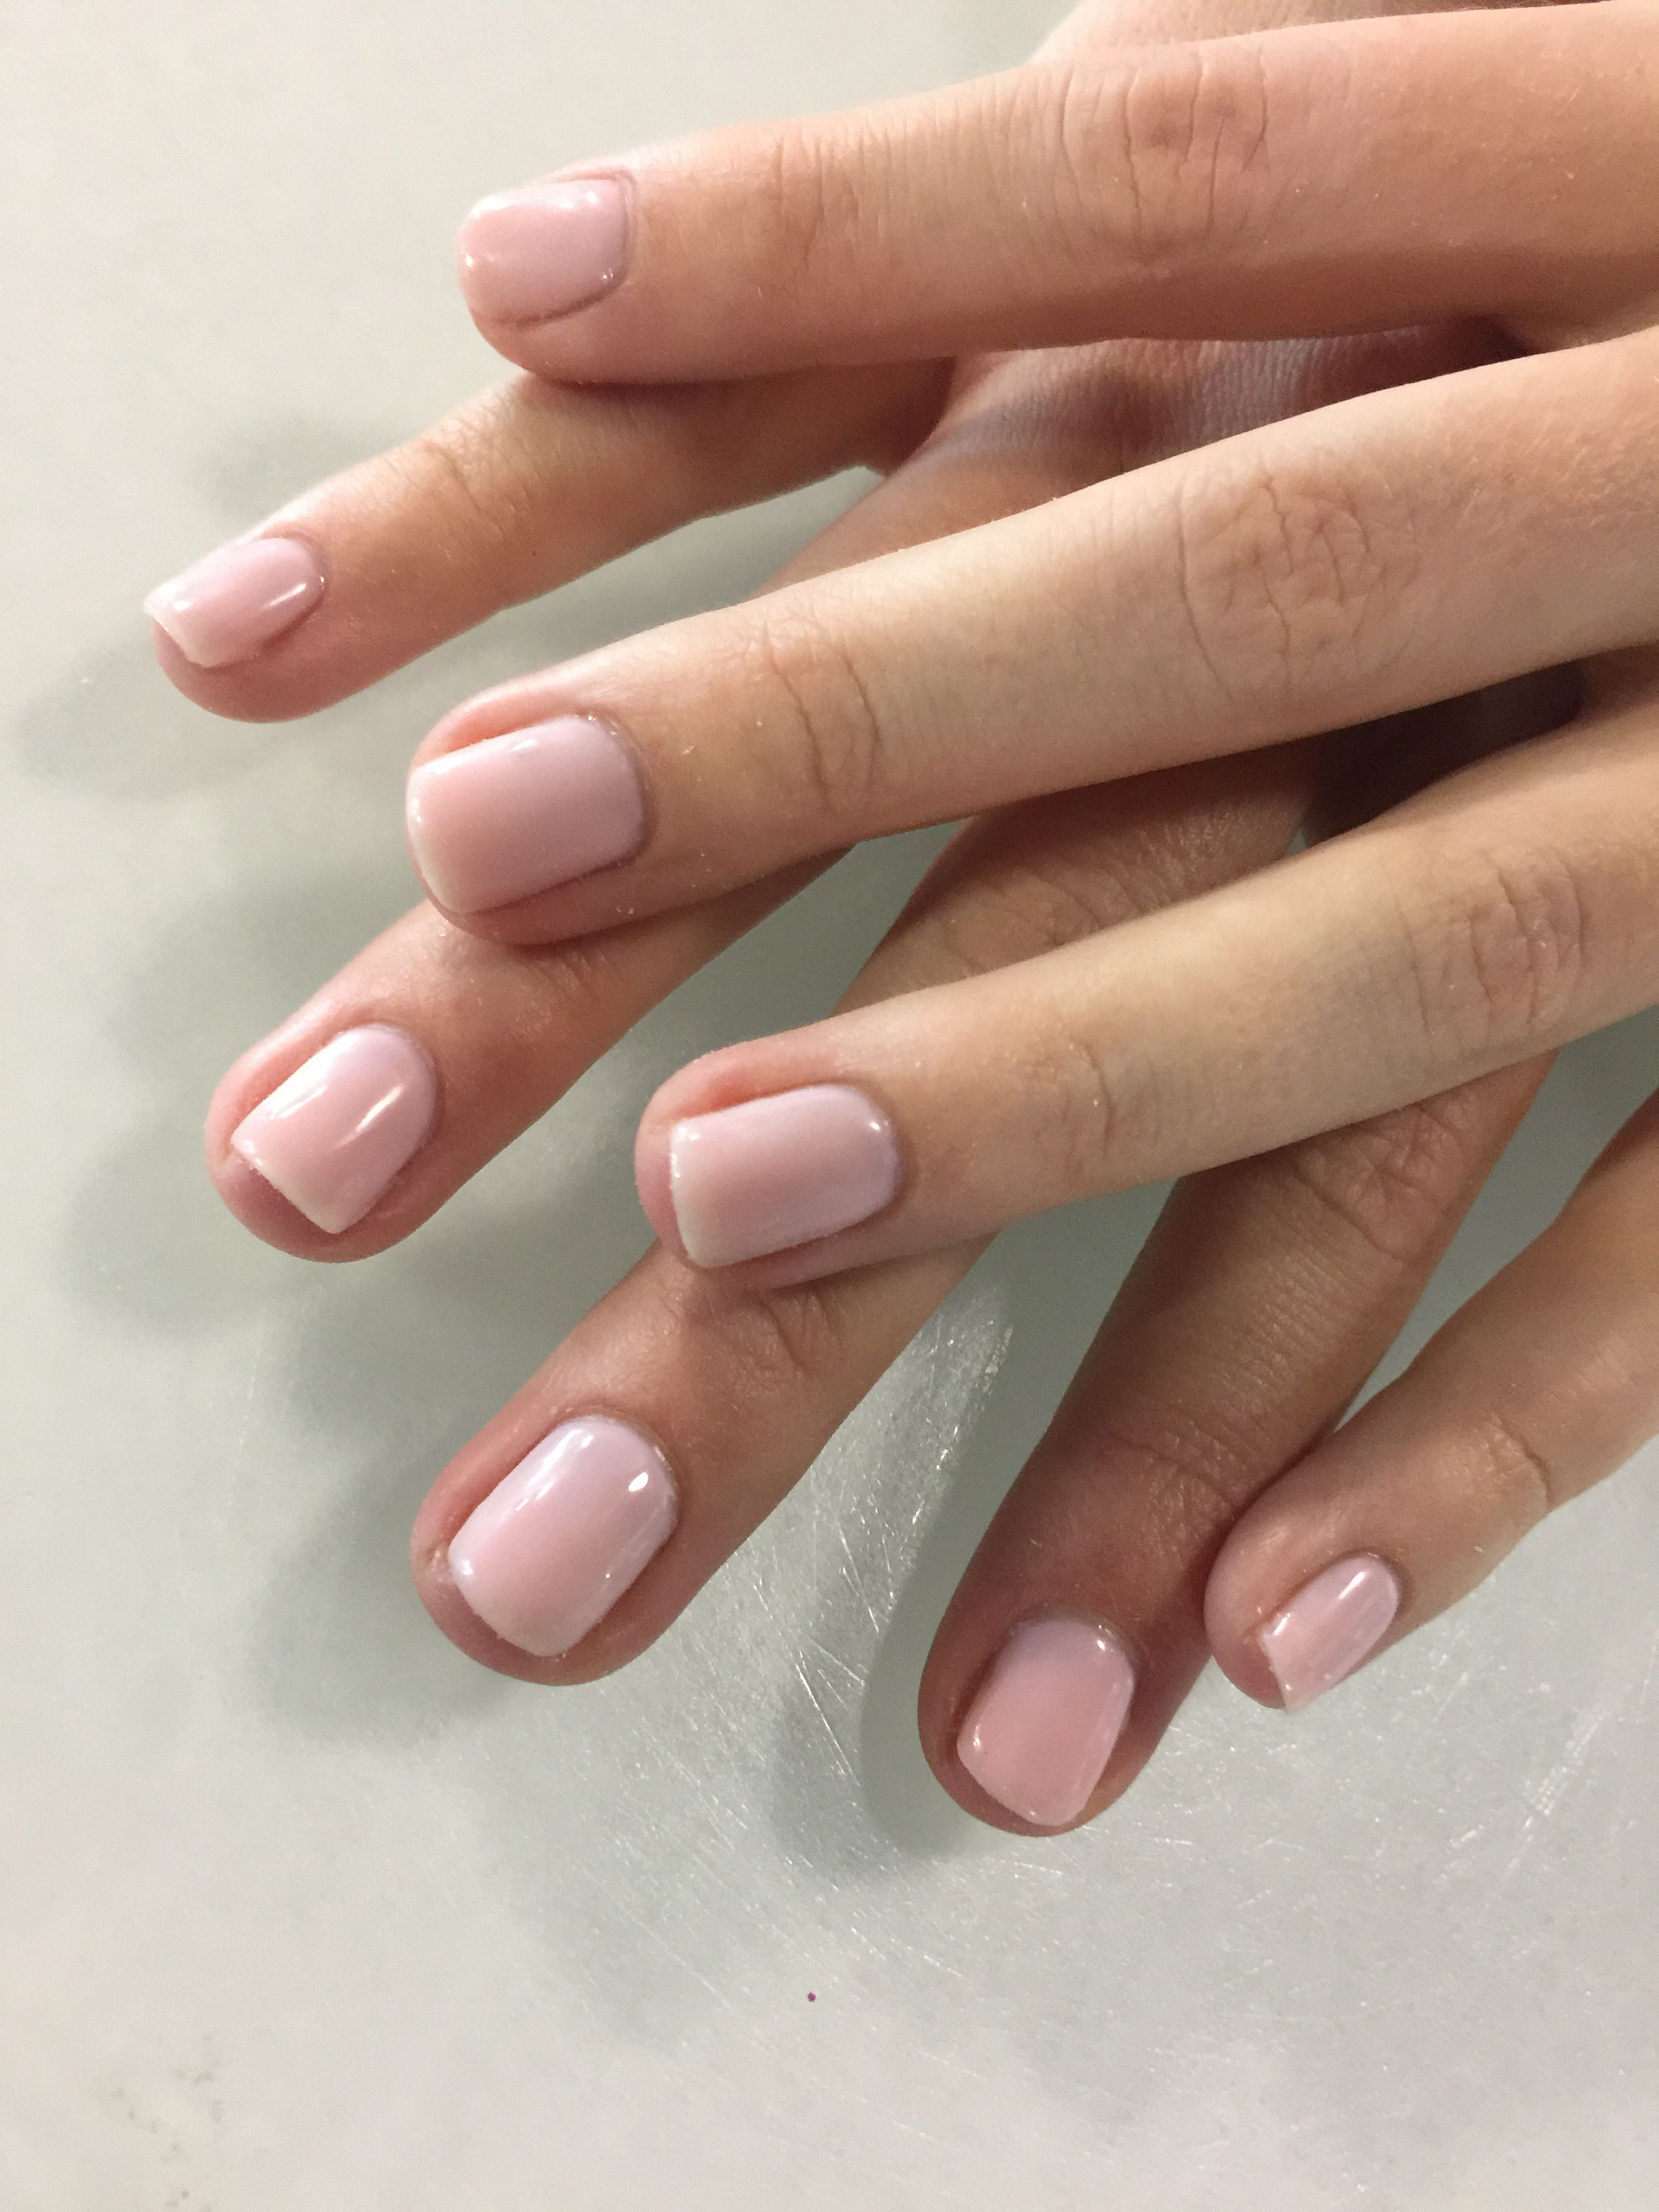 Funny bunny & bubble bath by opi | nails | Pinterest | Funny bunnies ...